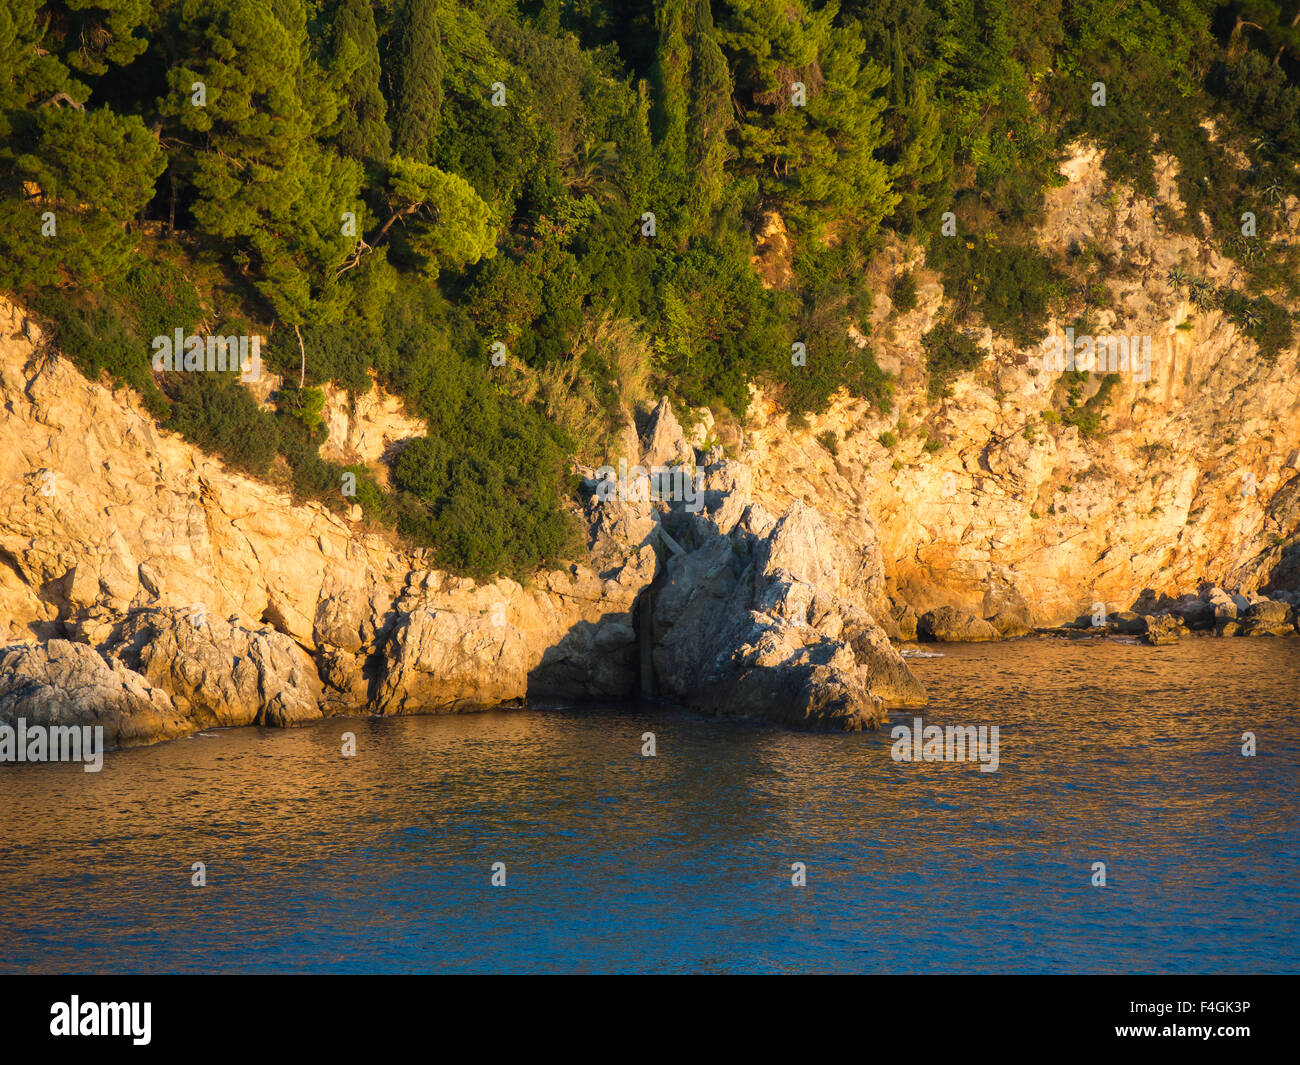 Sunset on the Dalmatian coast of the Adriatic sea makes the cliffs turn golden , here the outskirts of Dubrovnik - Stock Image